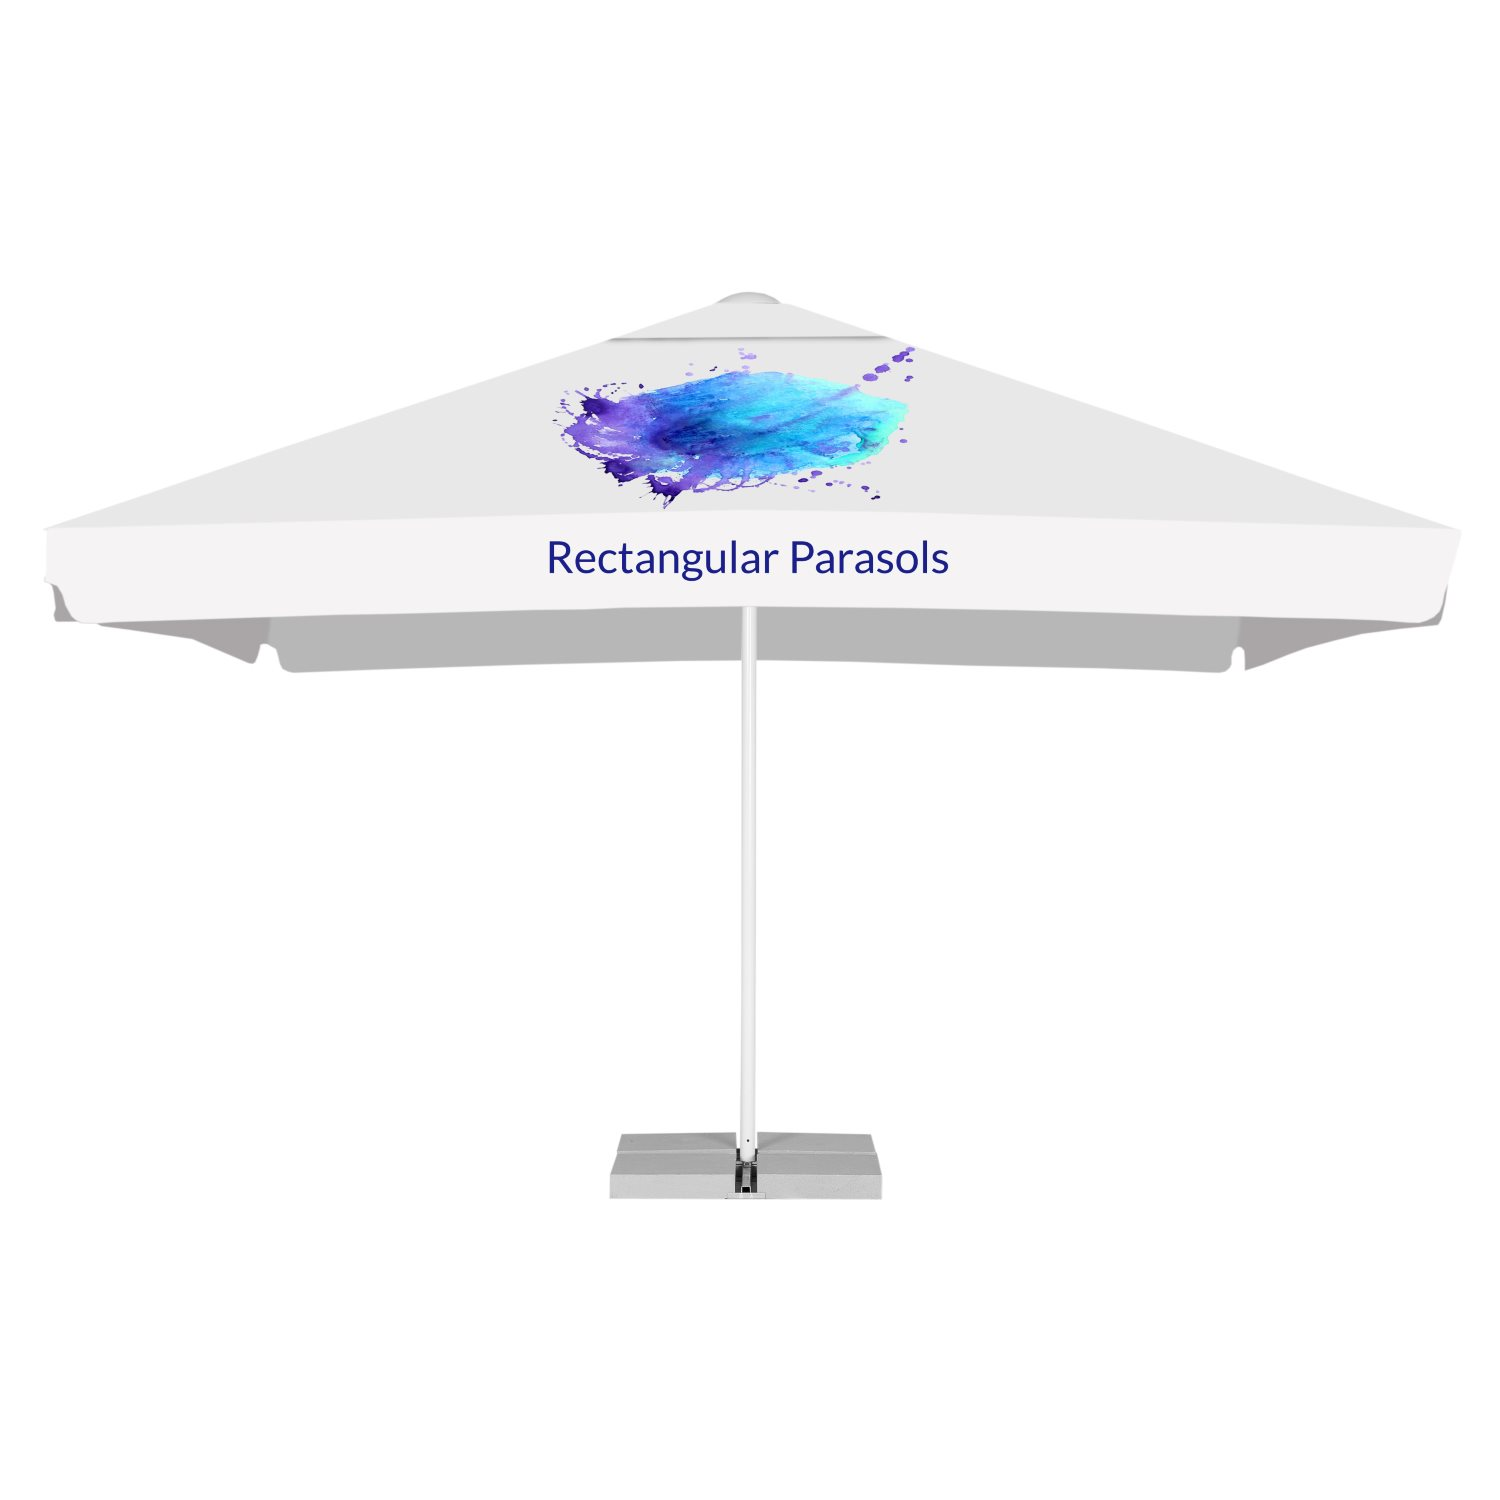 4. Rectangular advertising parasols 2 x 3 m